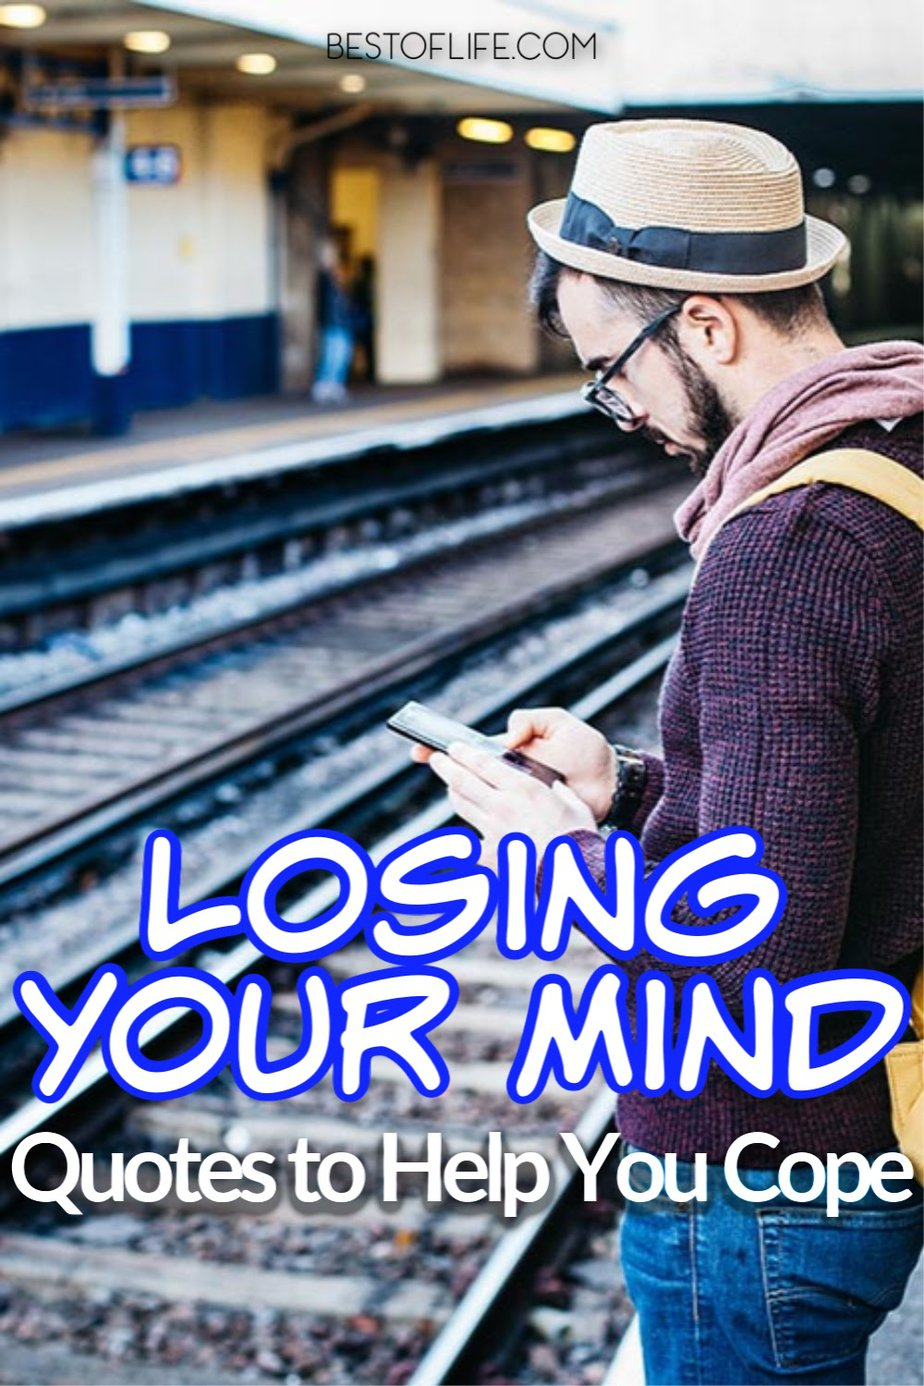 Losing your mind quotes may not solve your problems but they are funny quotes that can help you cope when times are stressful. Funny Quotes | Quotes to Inspire | Motivational Quotes | Quotes about Stress | Sarcastic Quotes #quotes #funny